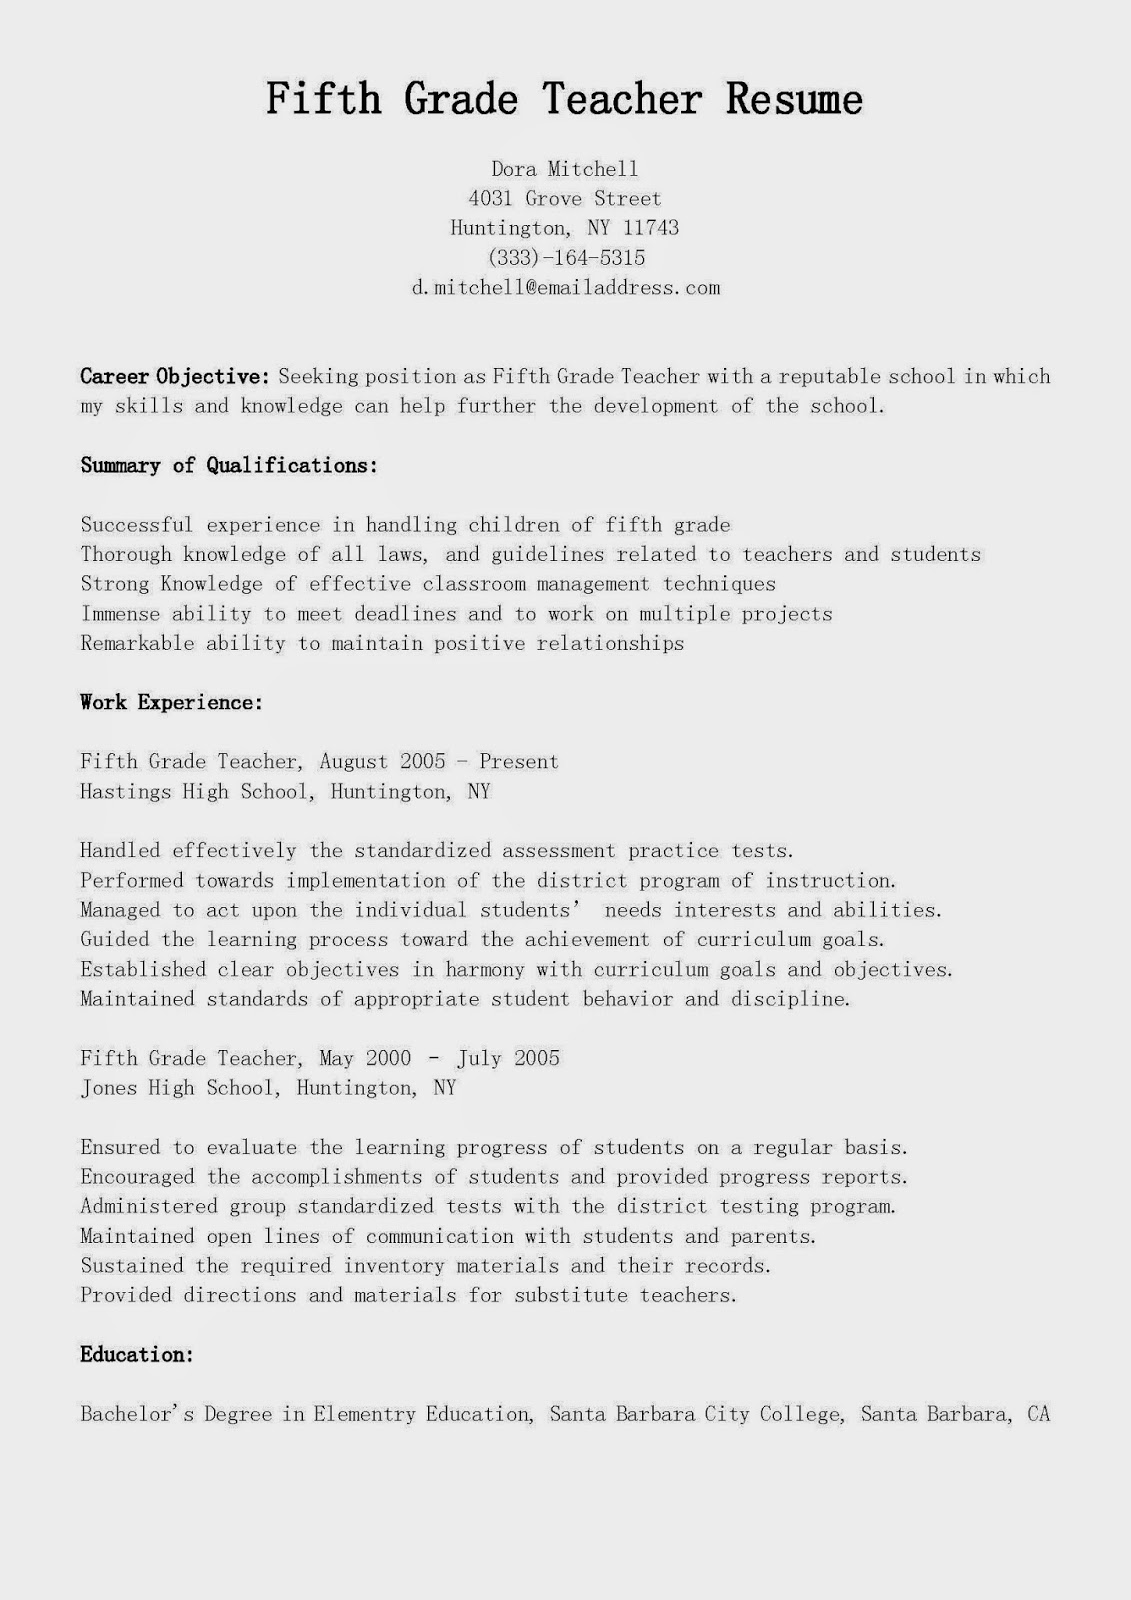 resume samples  fifth grade teacher resume sample